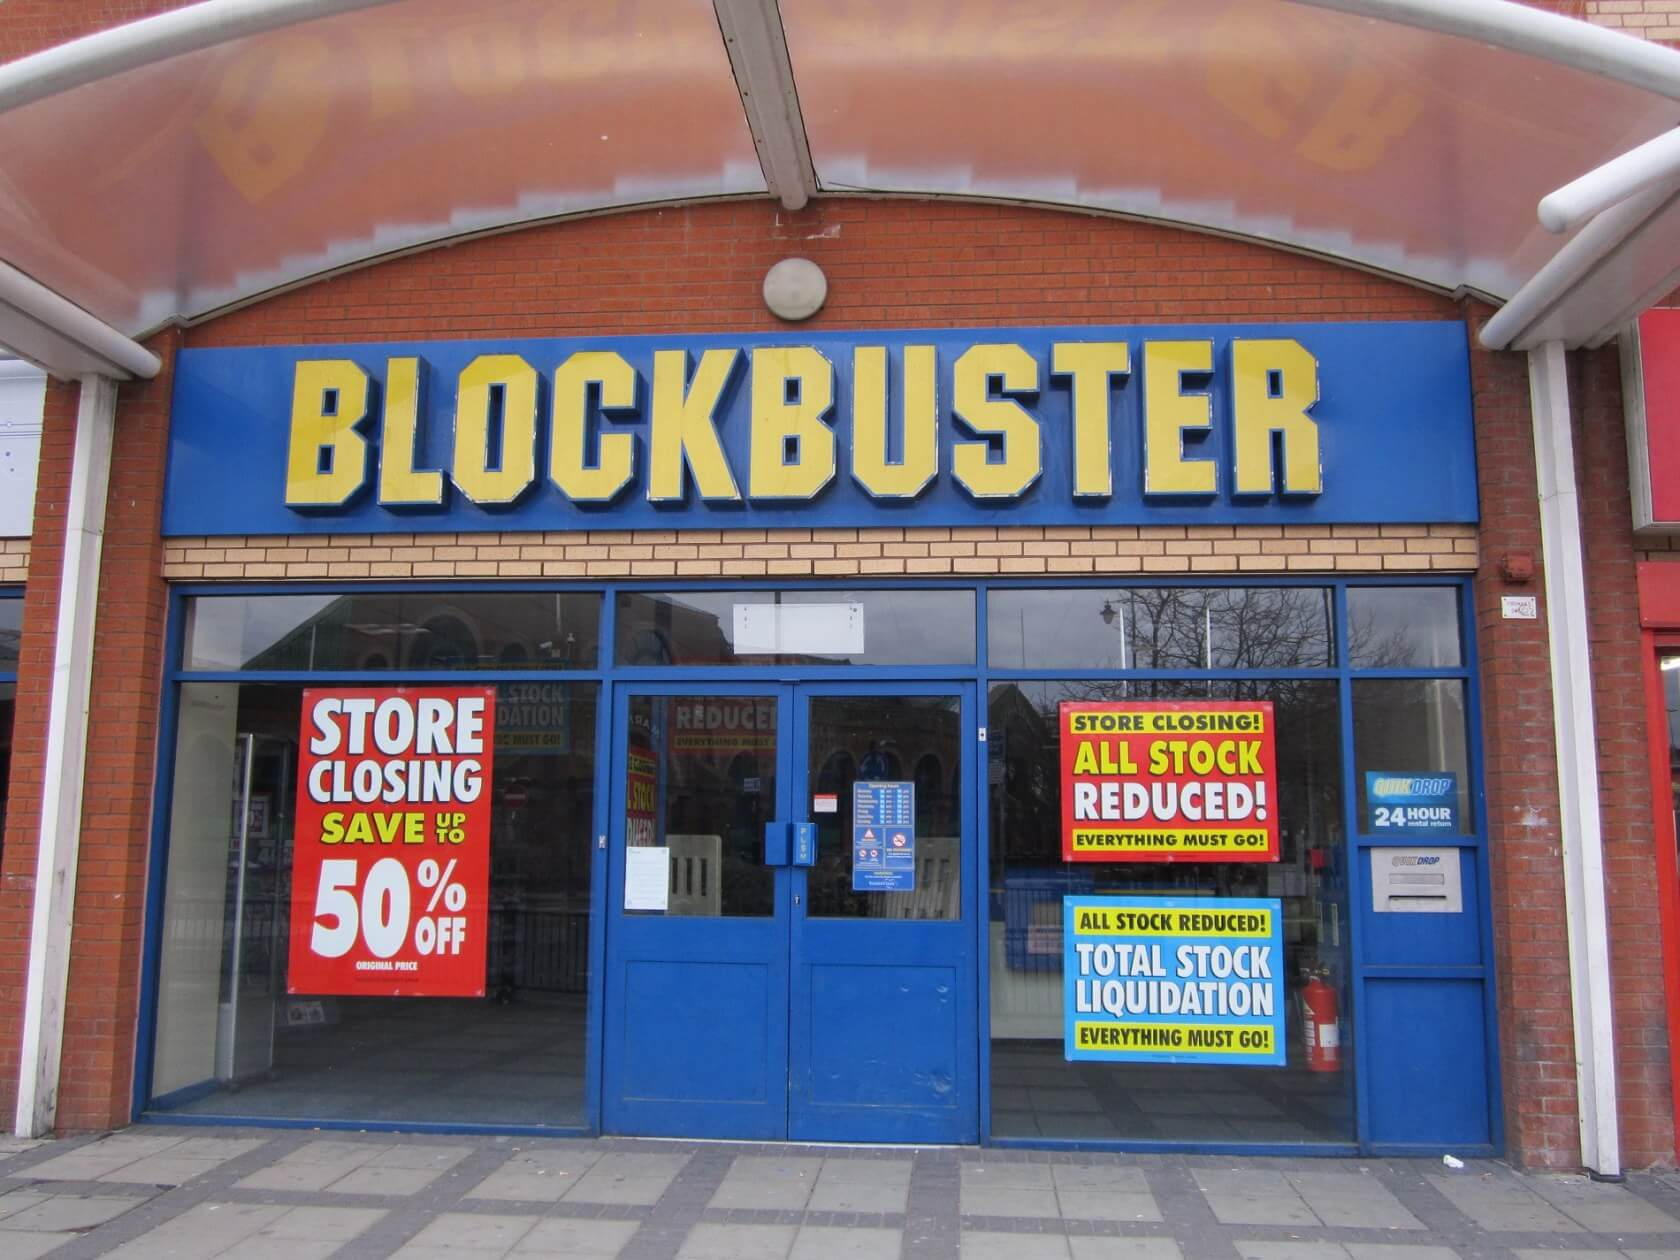 There is only one Blockbuster left in existence